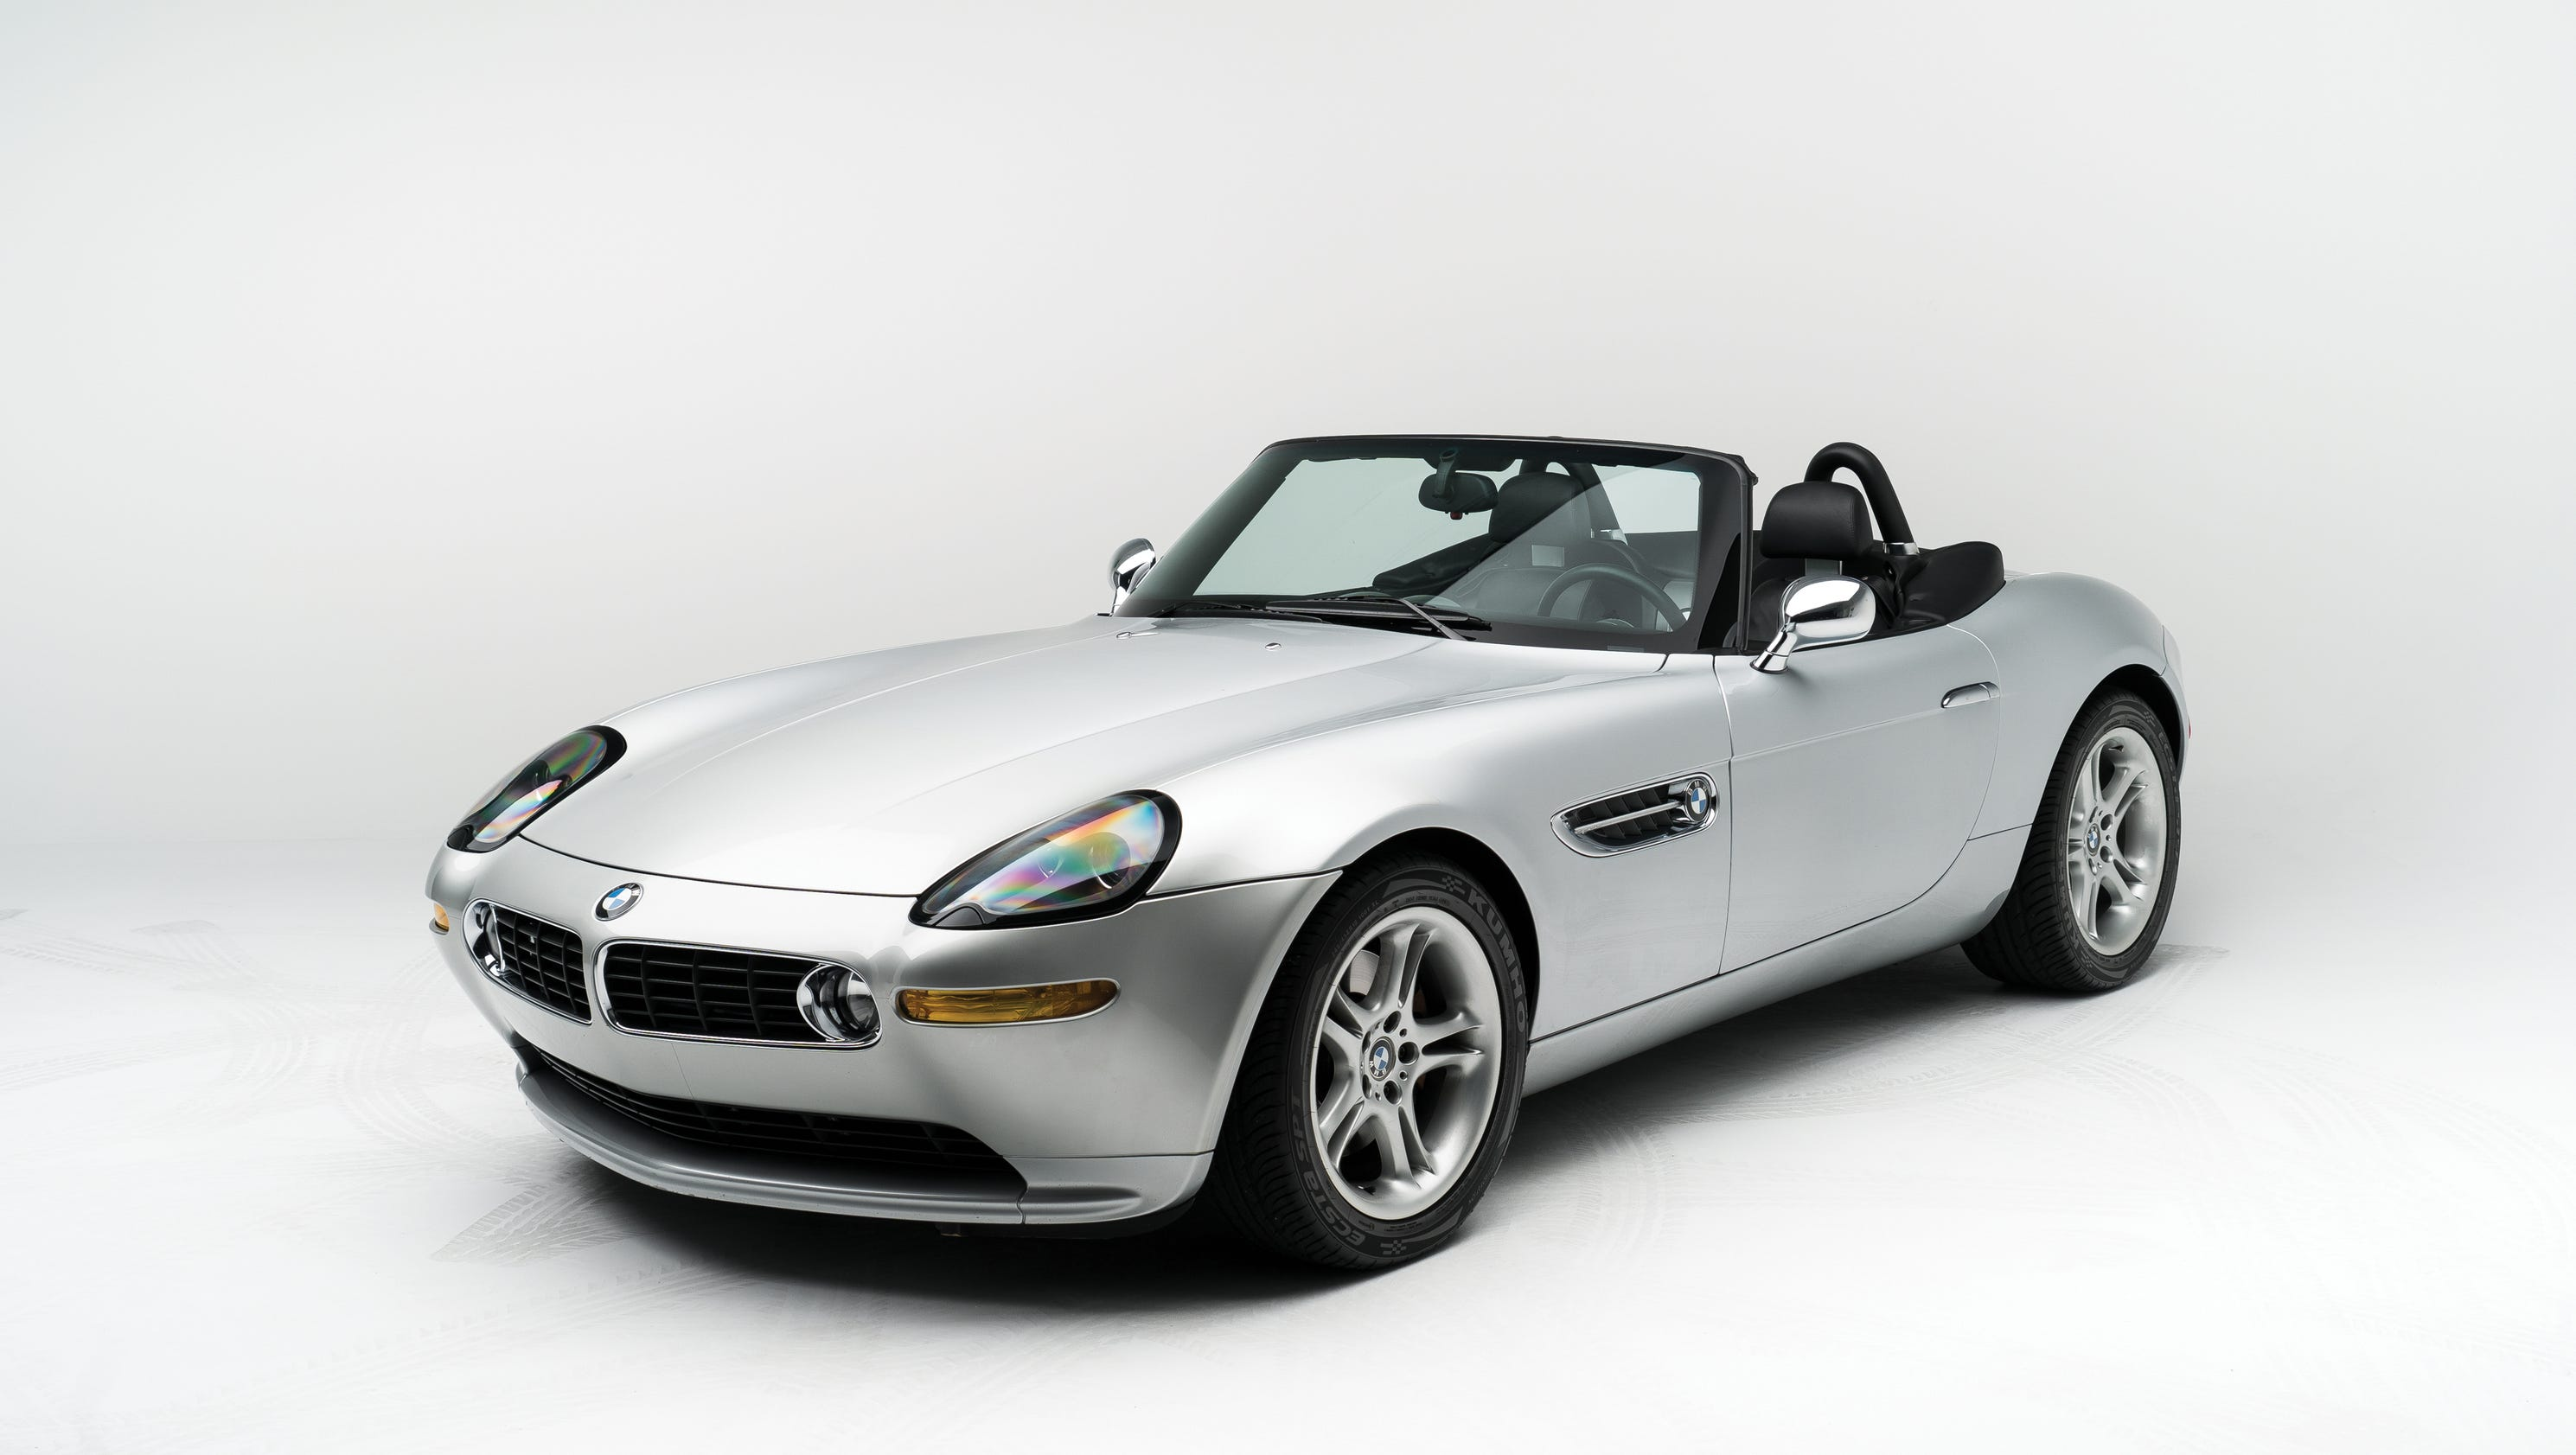 Apple Founder Steve Jobs S Bmw Z8 Hits The Auction Block